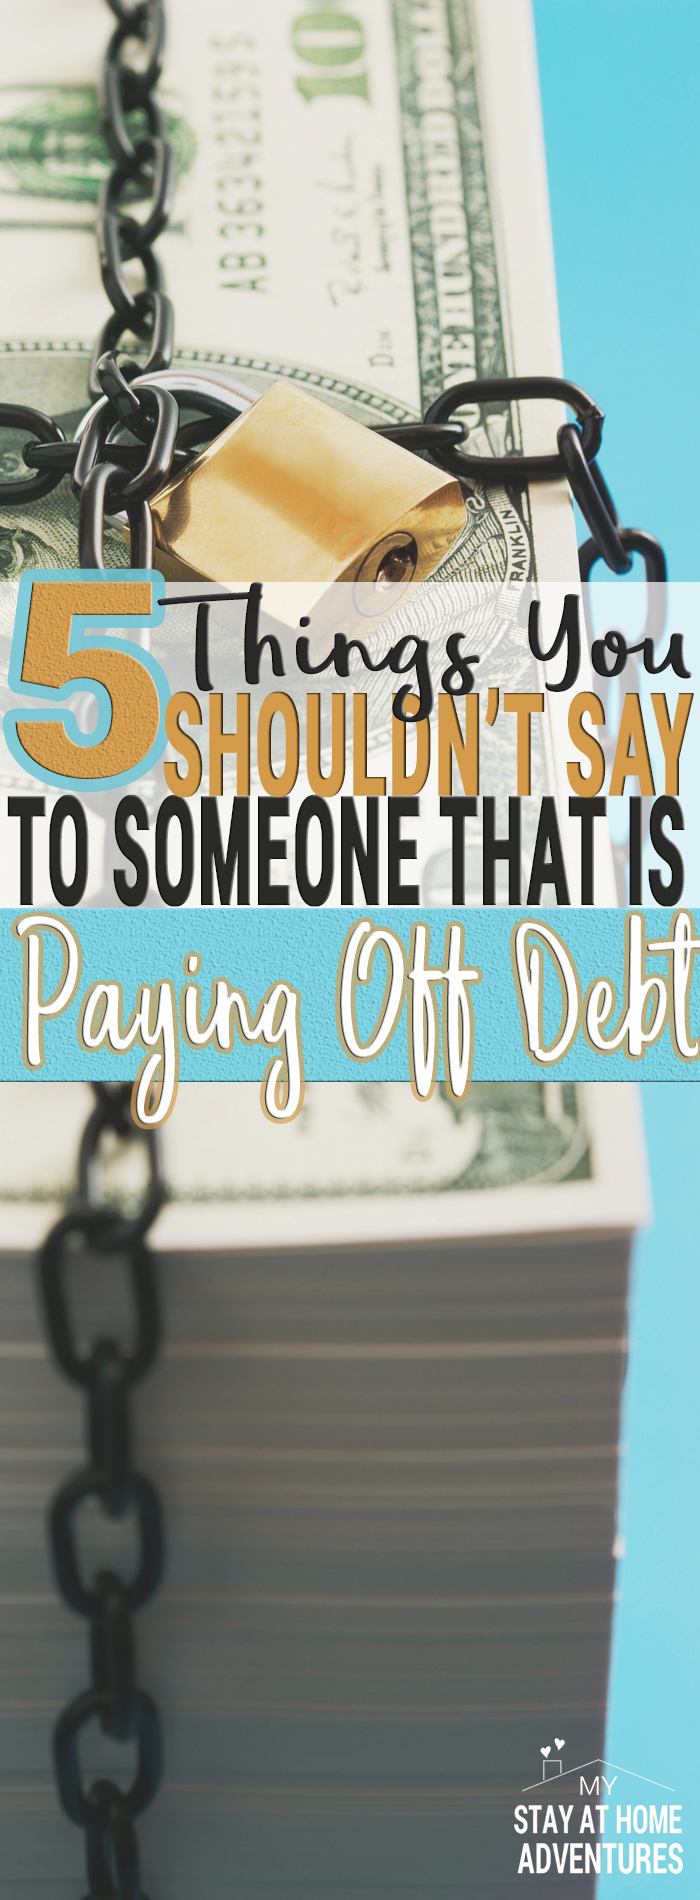 Paying off debt its hard and a long journey that requires support. It becomes much difficult when paying off debt comes with negative support from others.